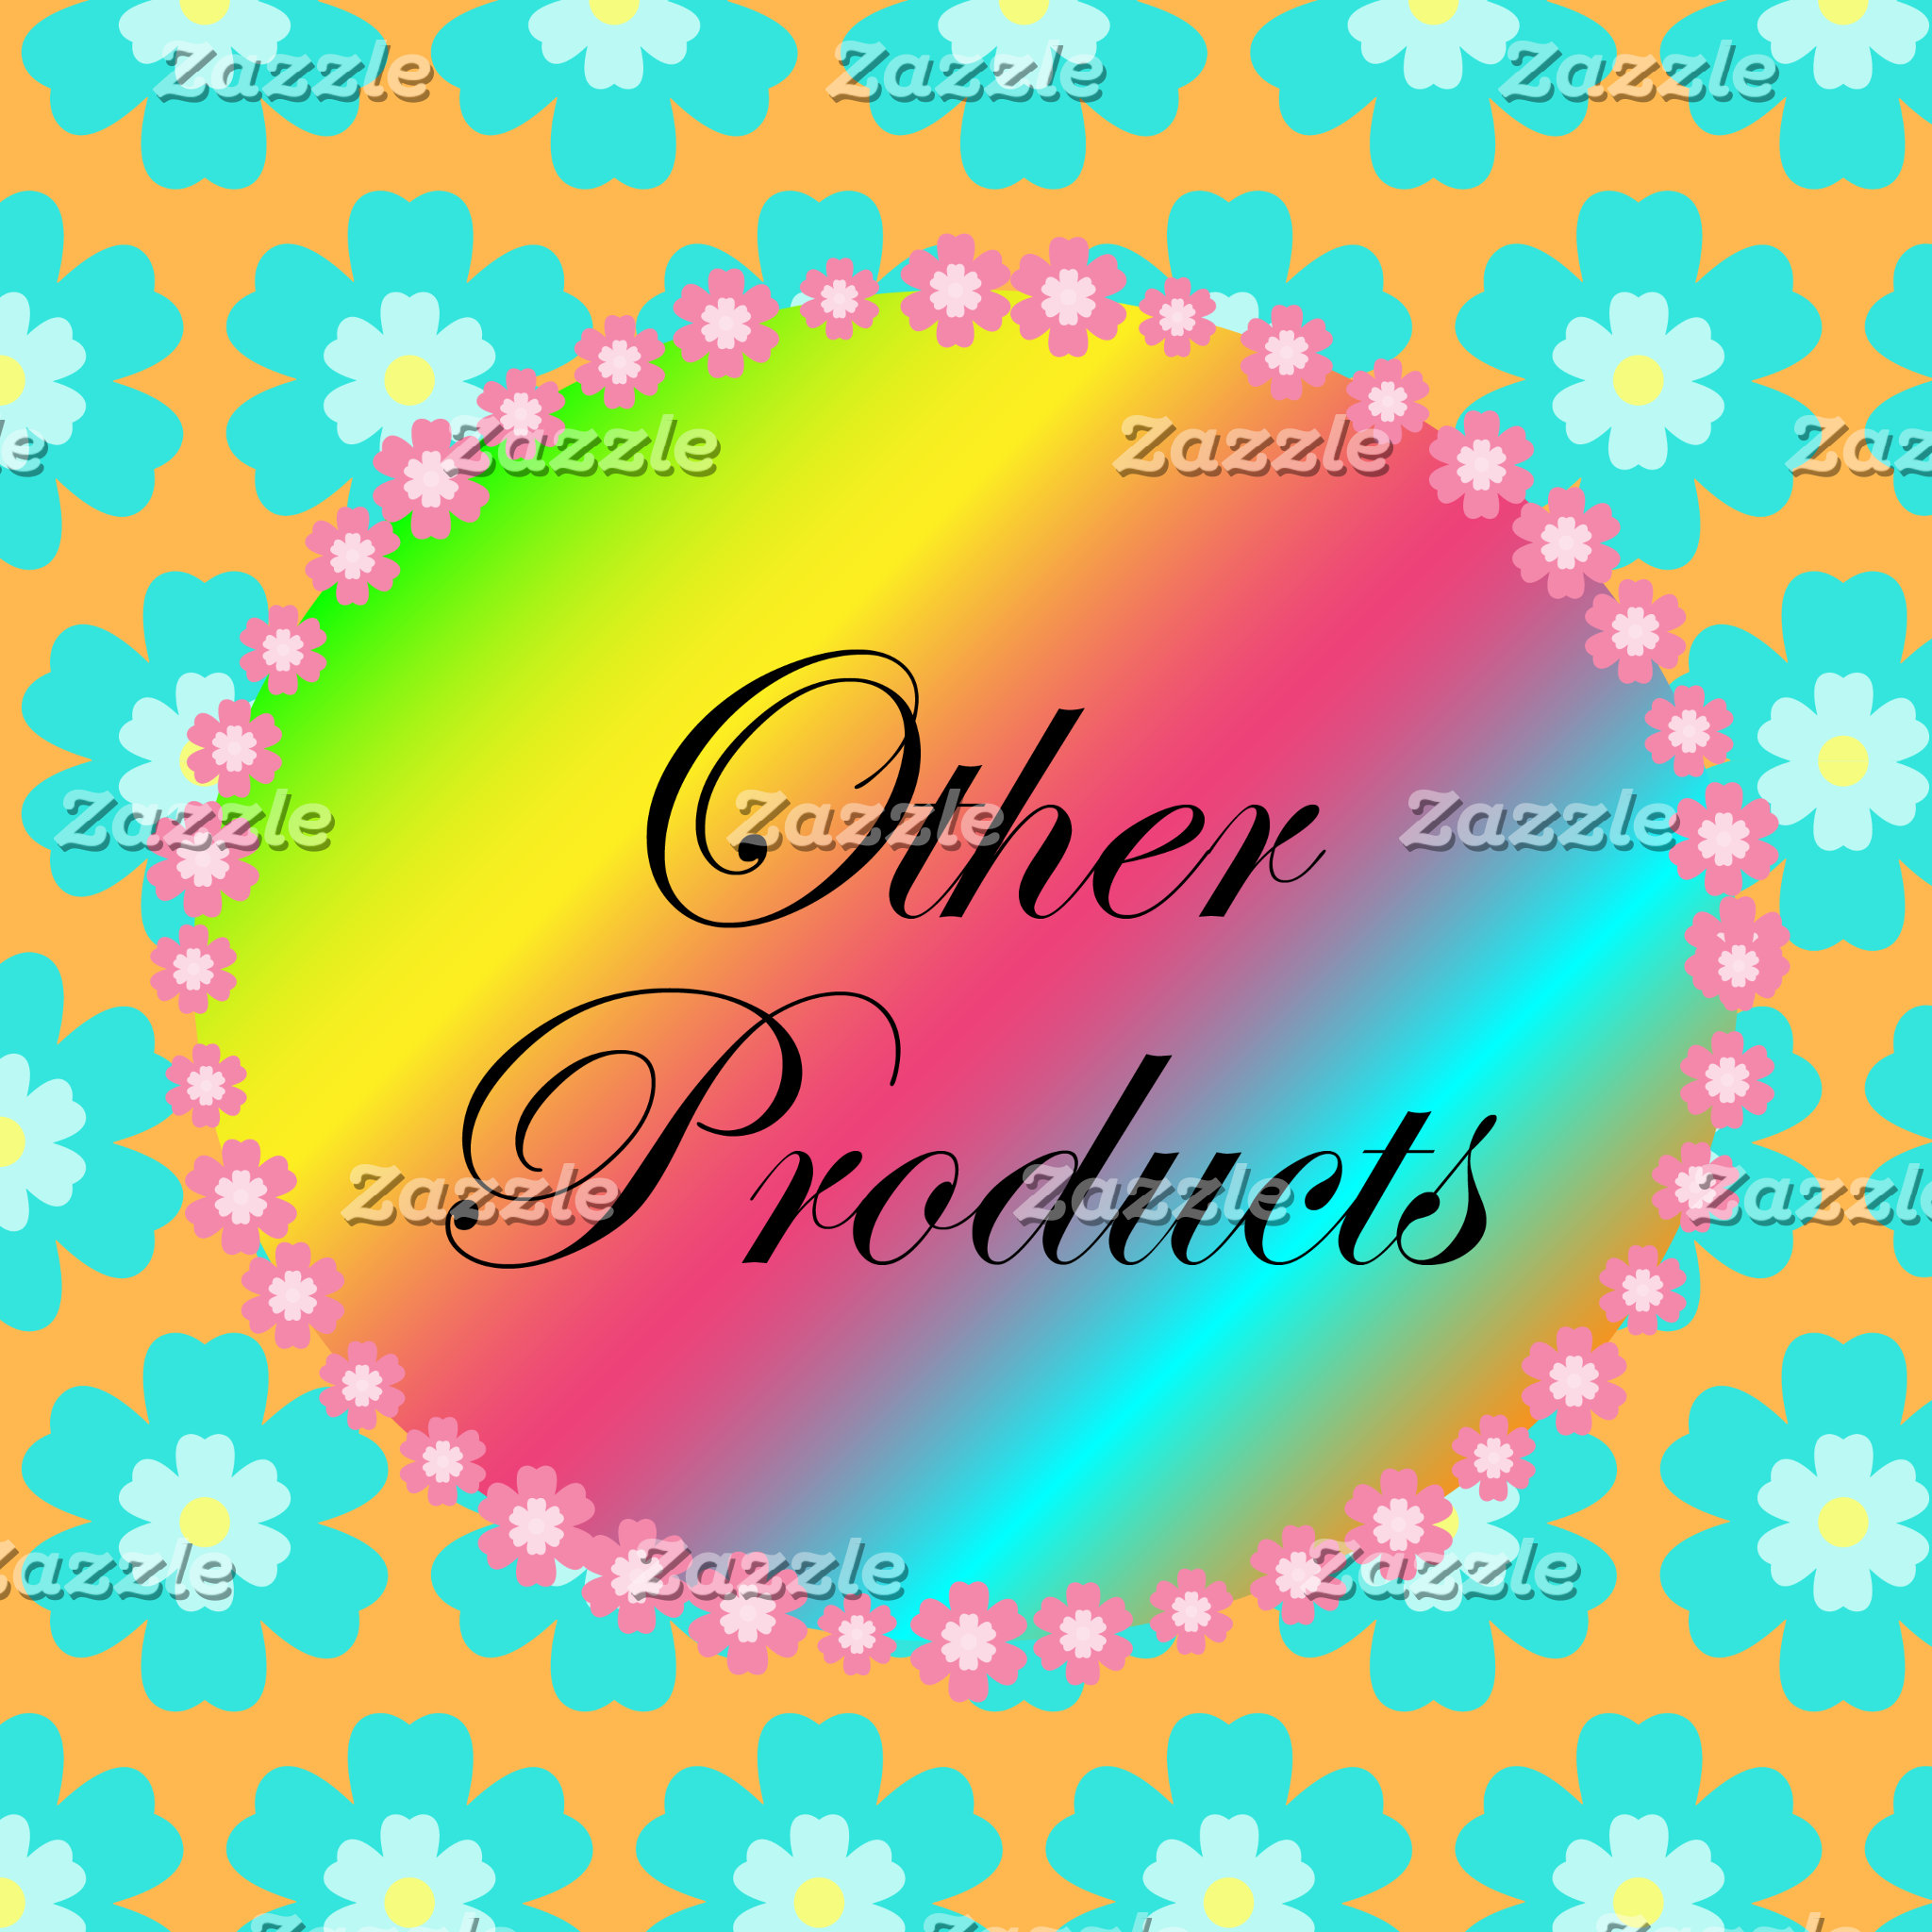 18. Other Products